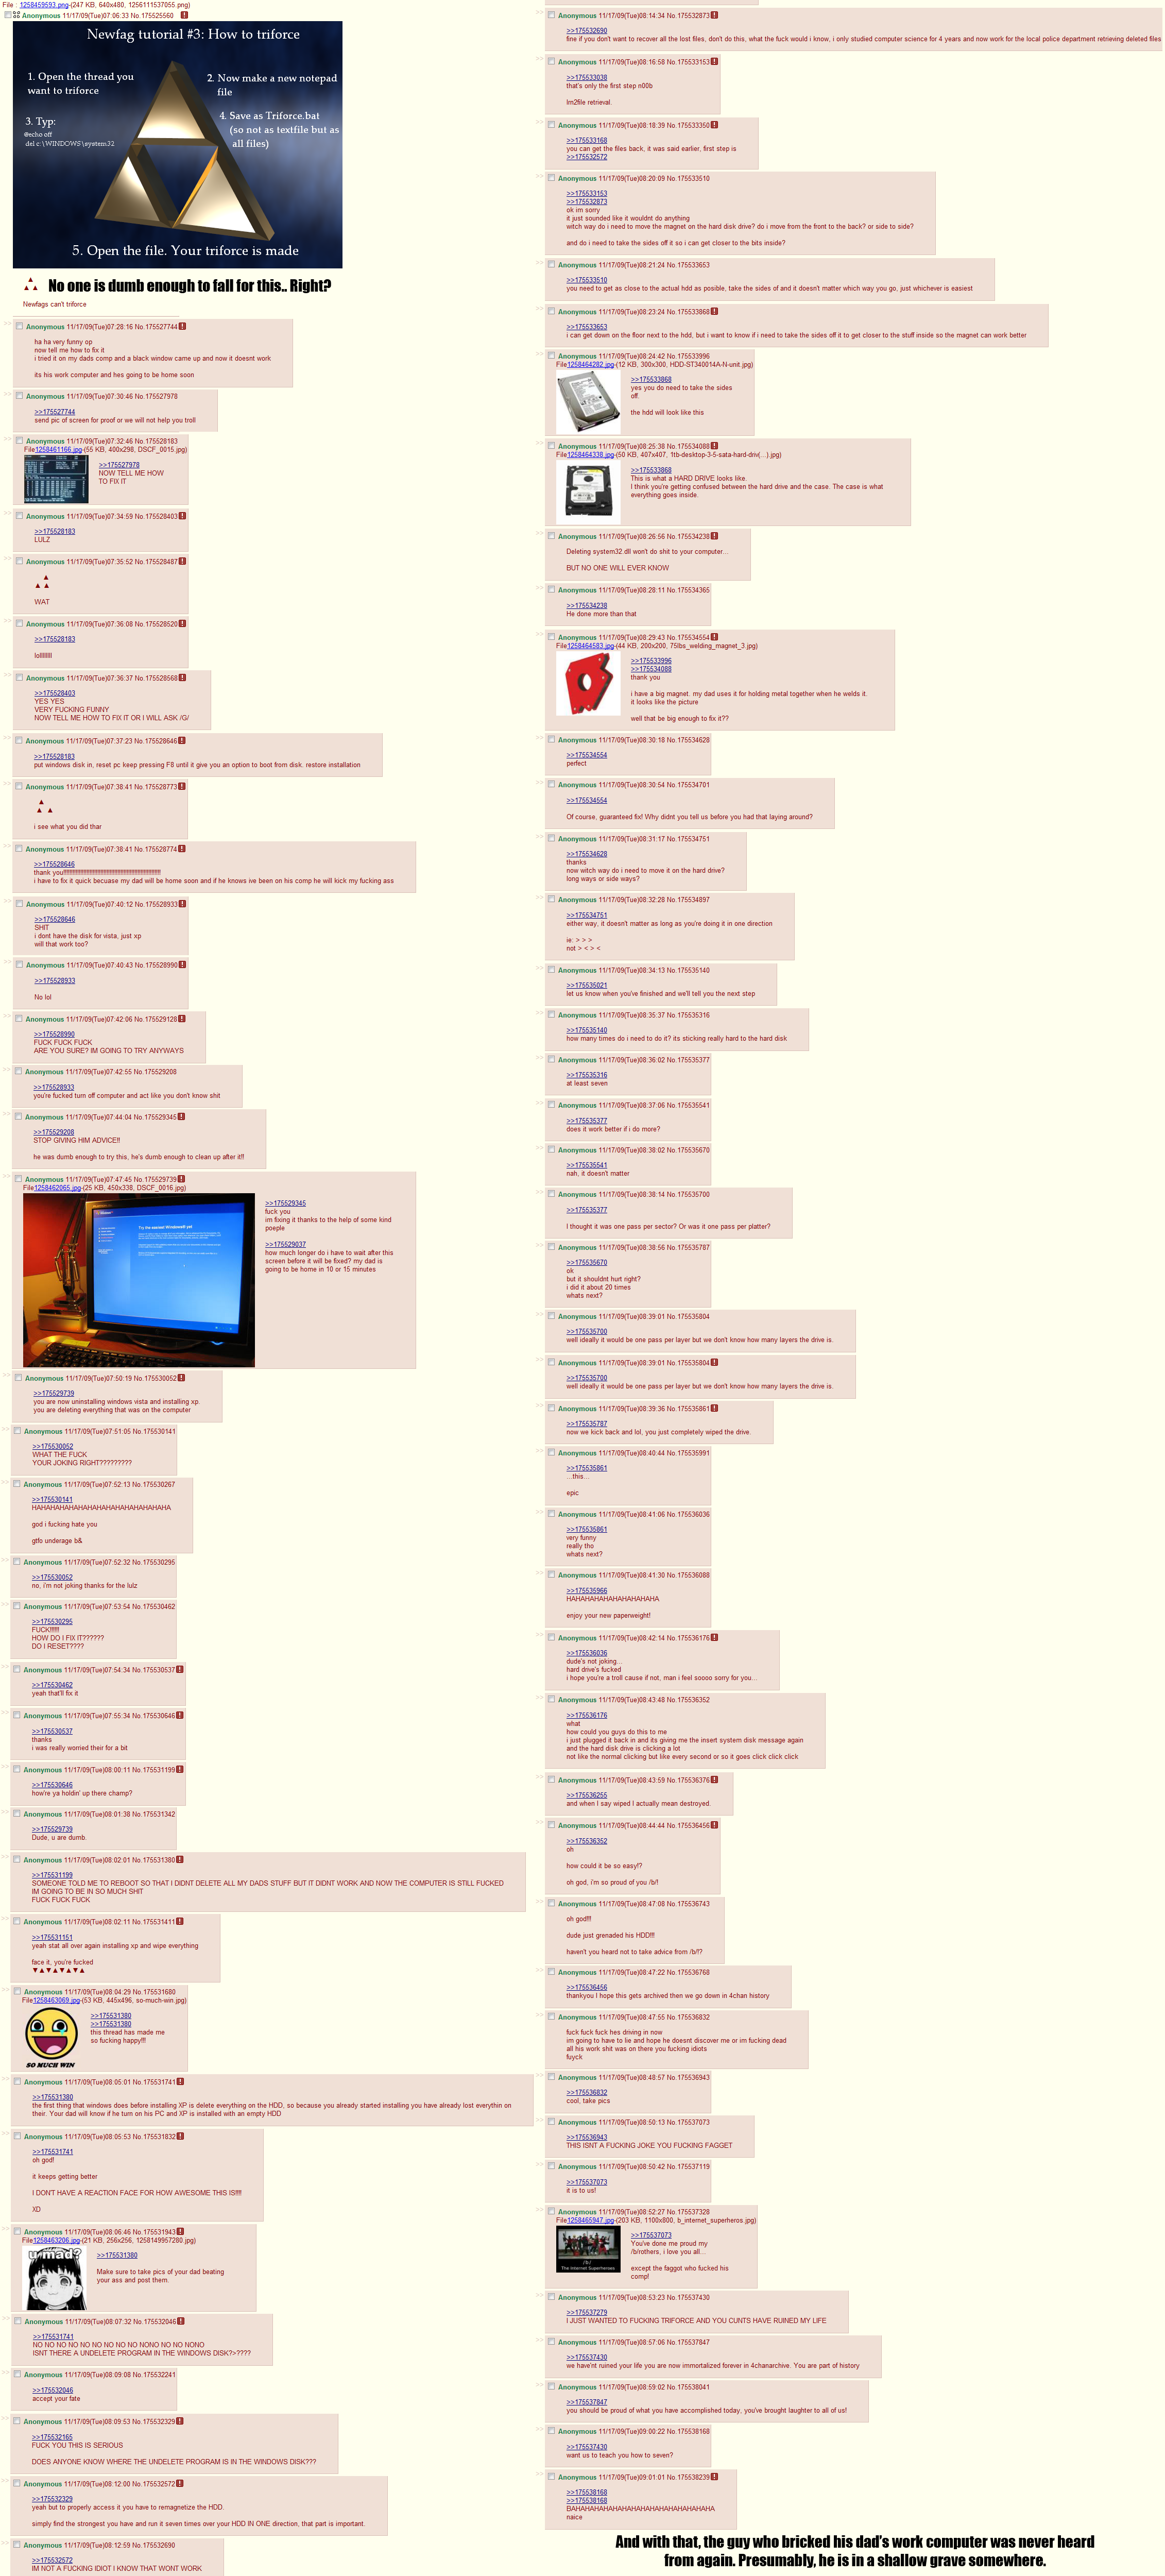 Oh 4chan, you so funny | Team9000 Forums